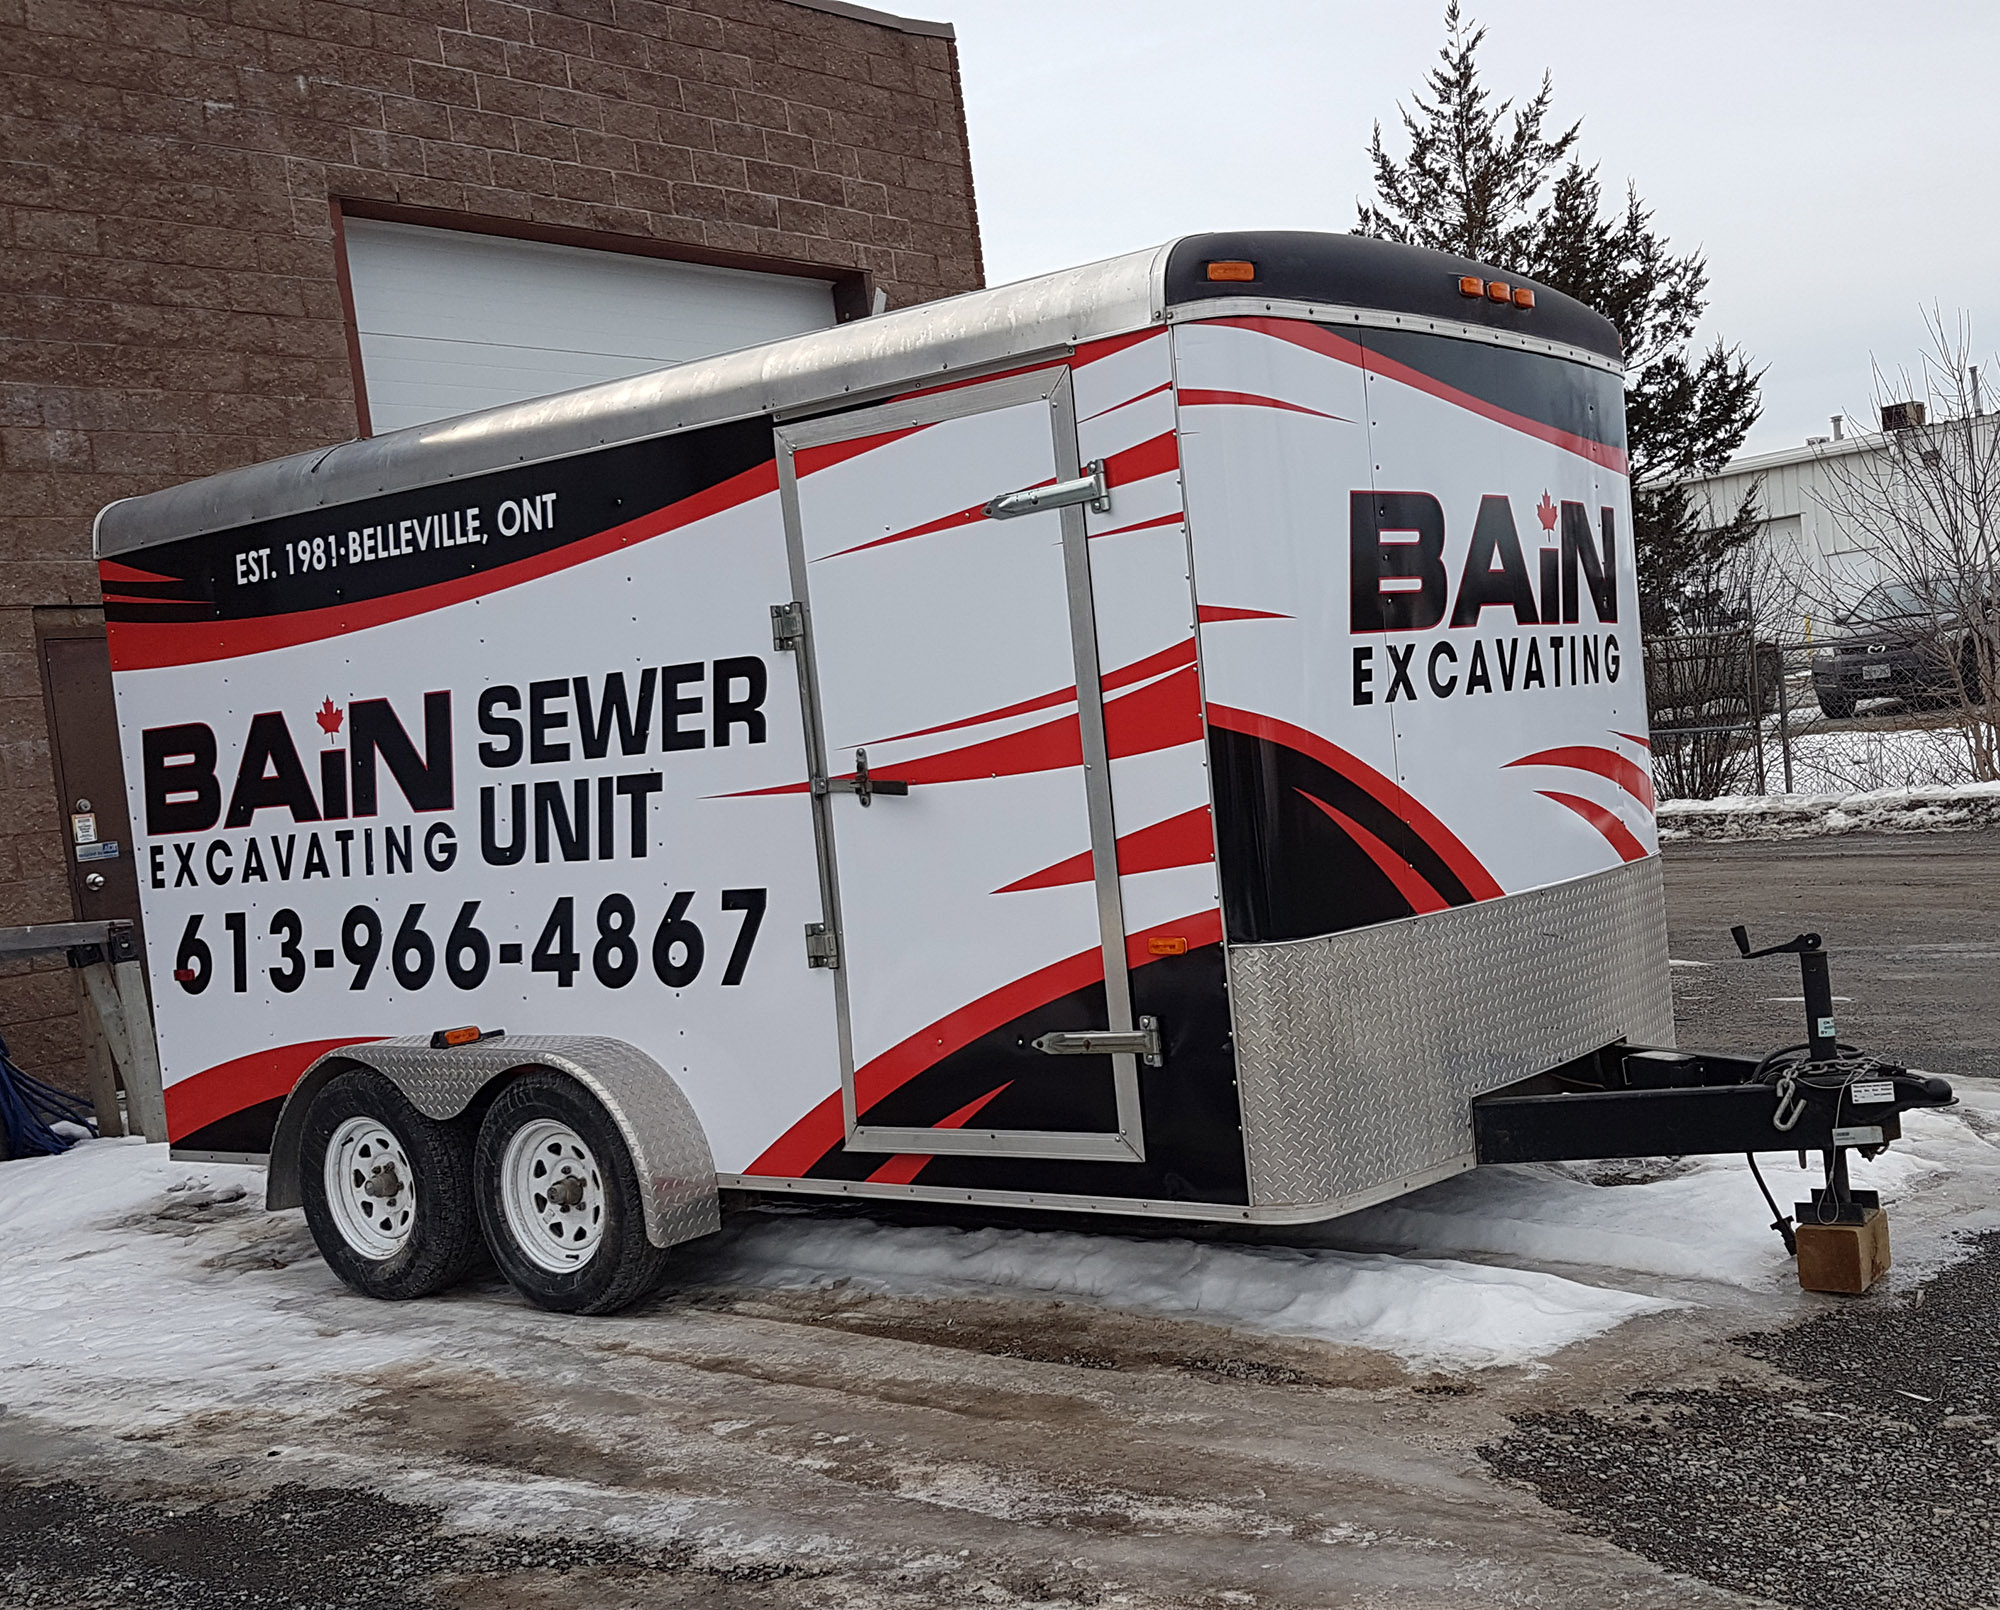 Bain Excavating Trailer